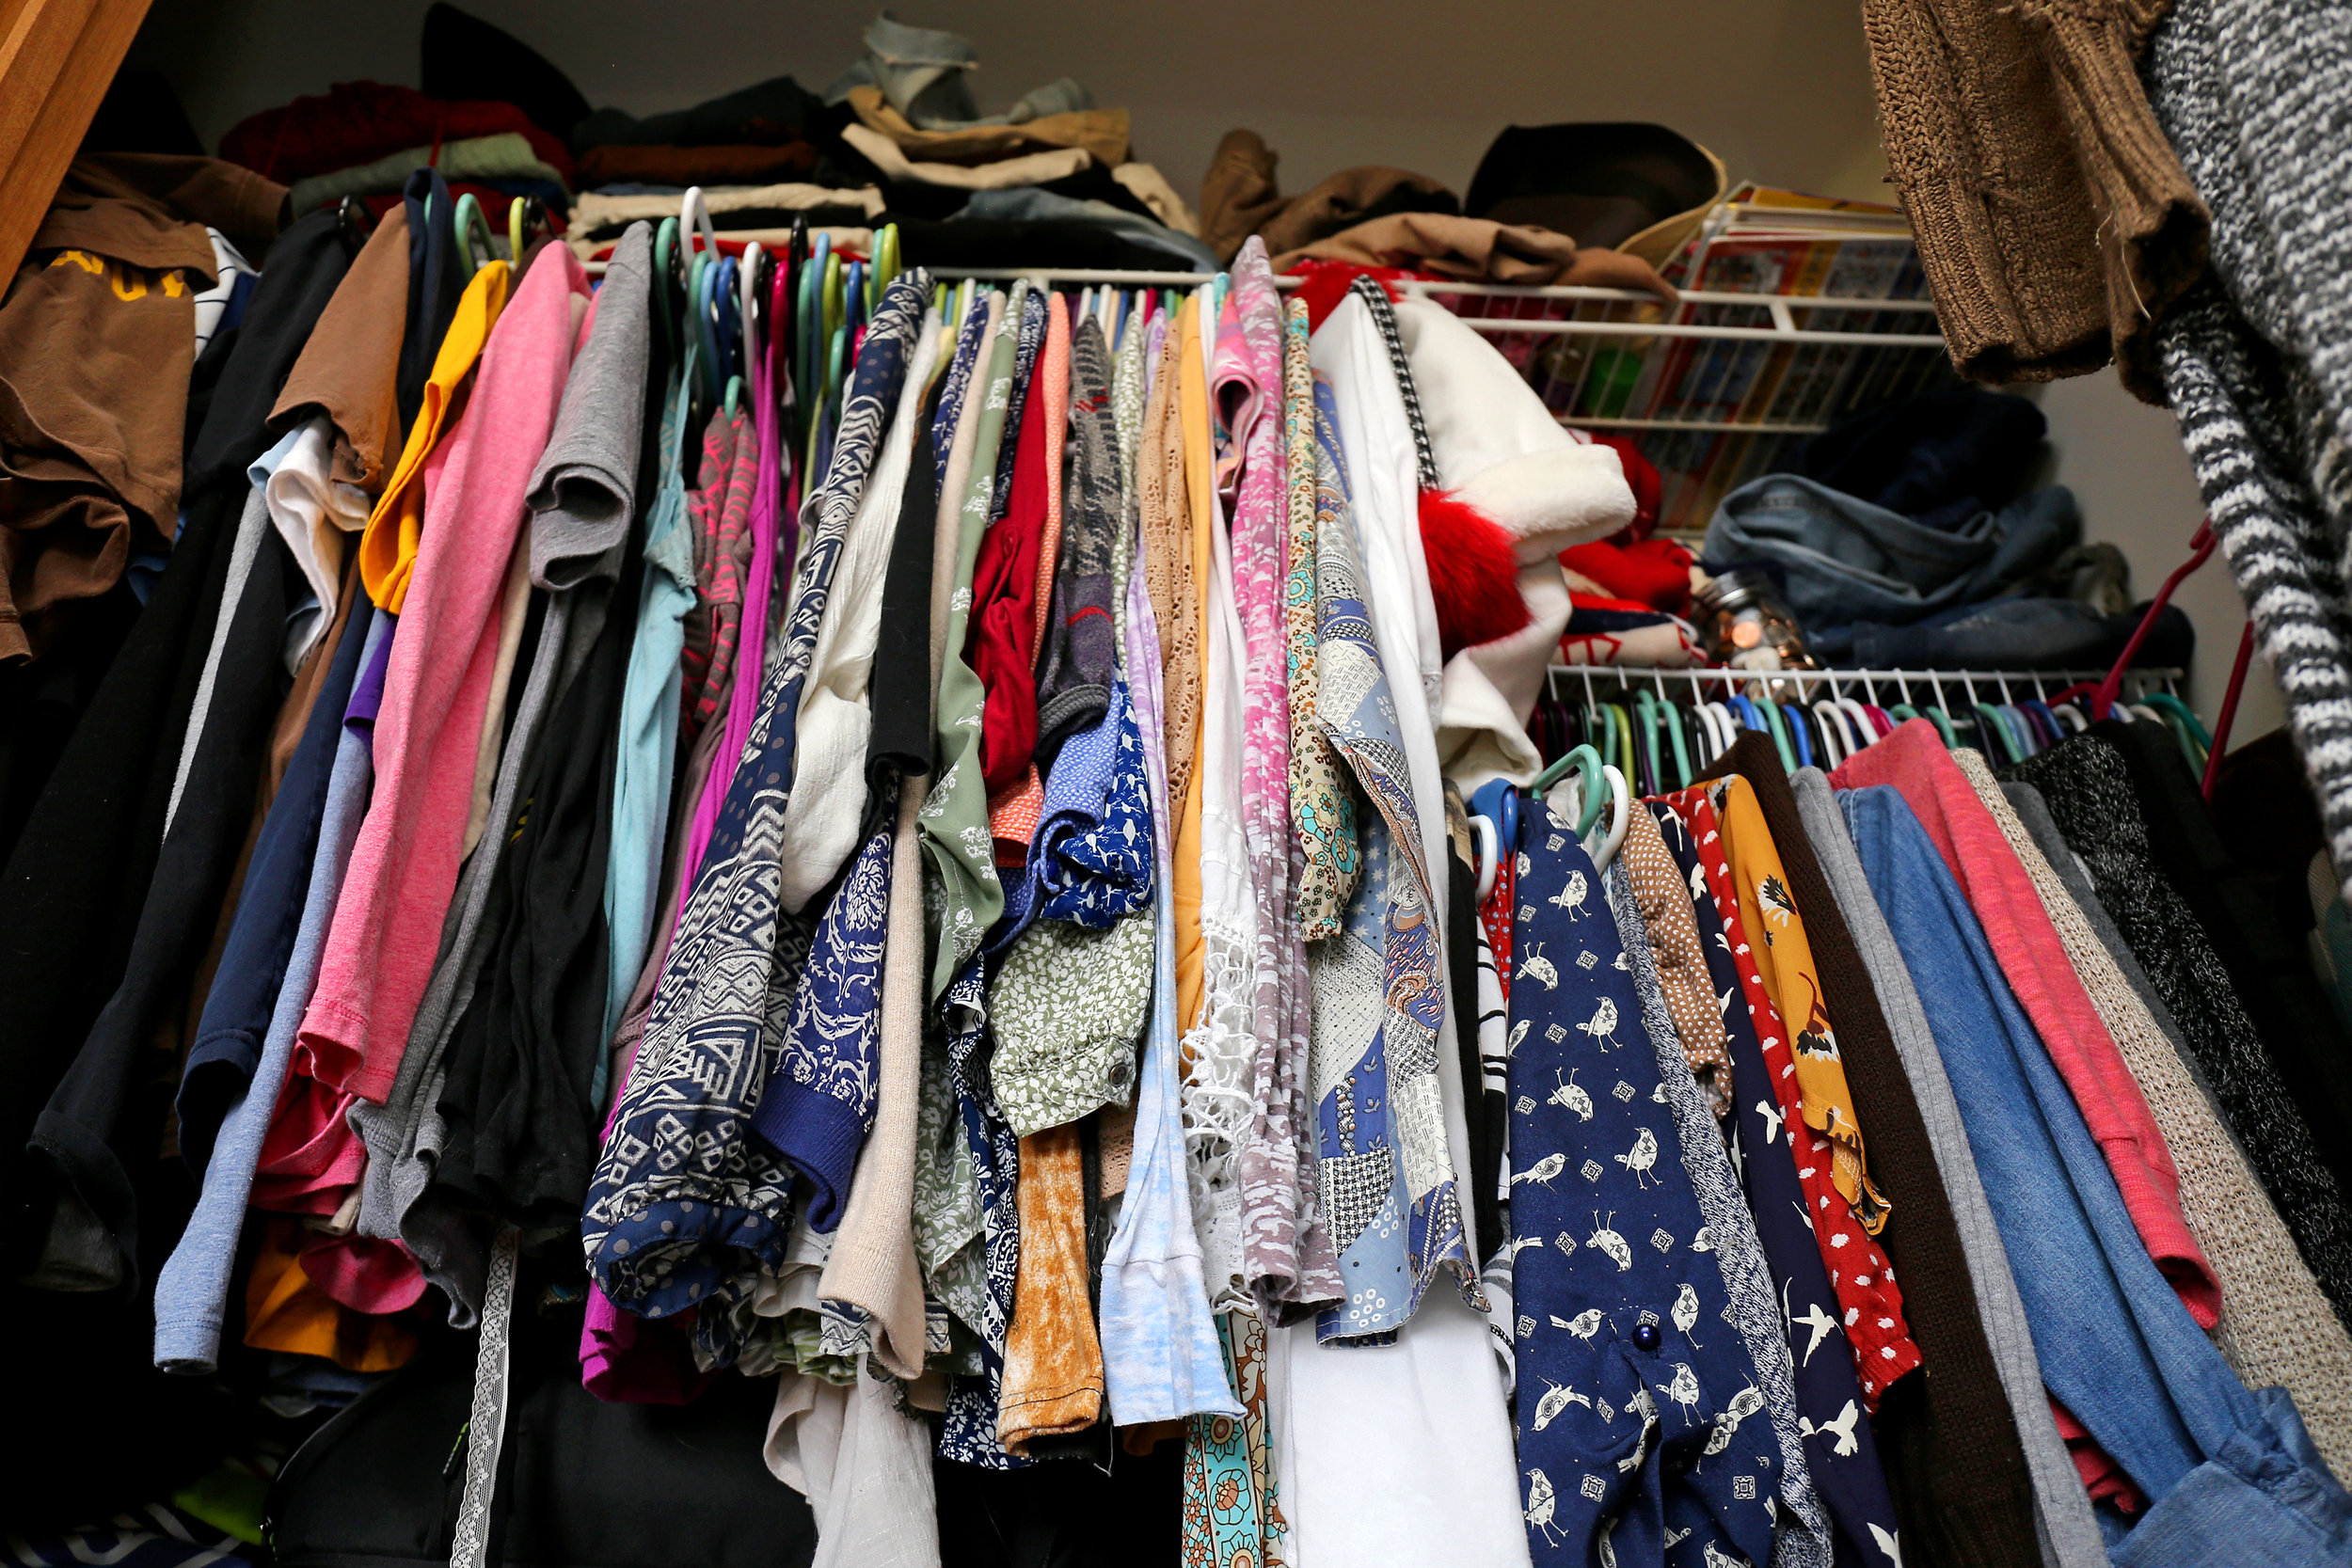 Canva - Messy Women's Closet Filled with Colorful Clothes.jpg